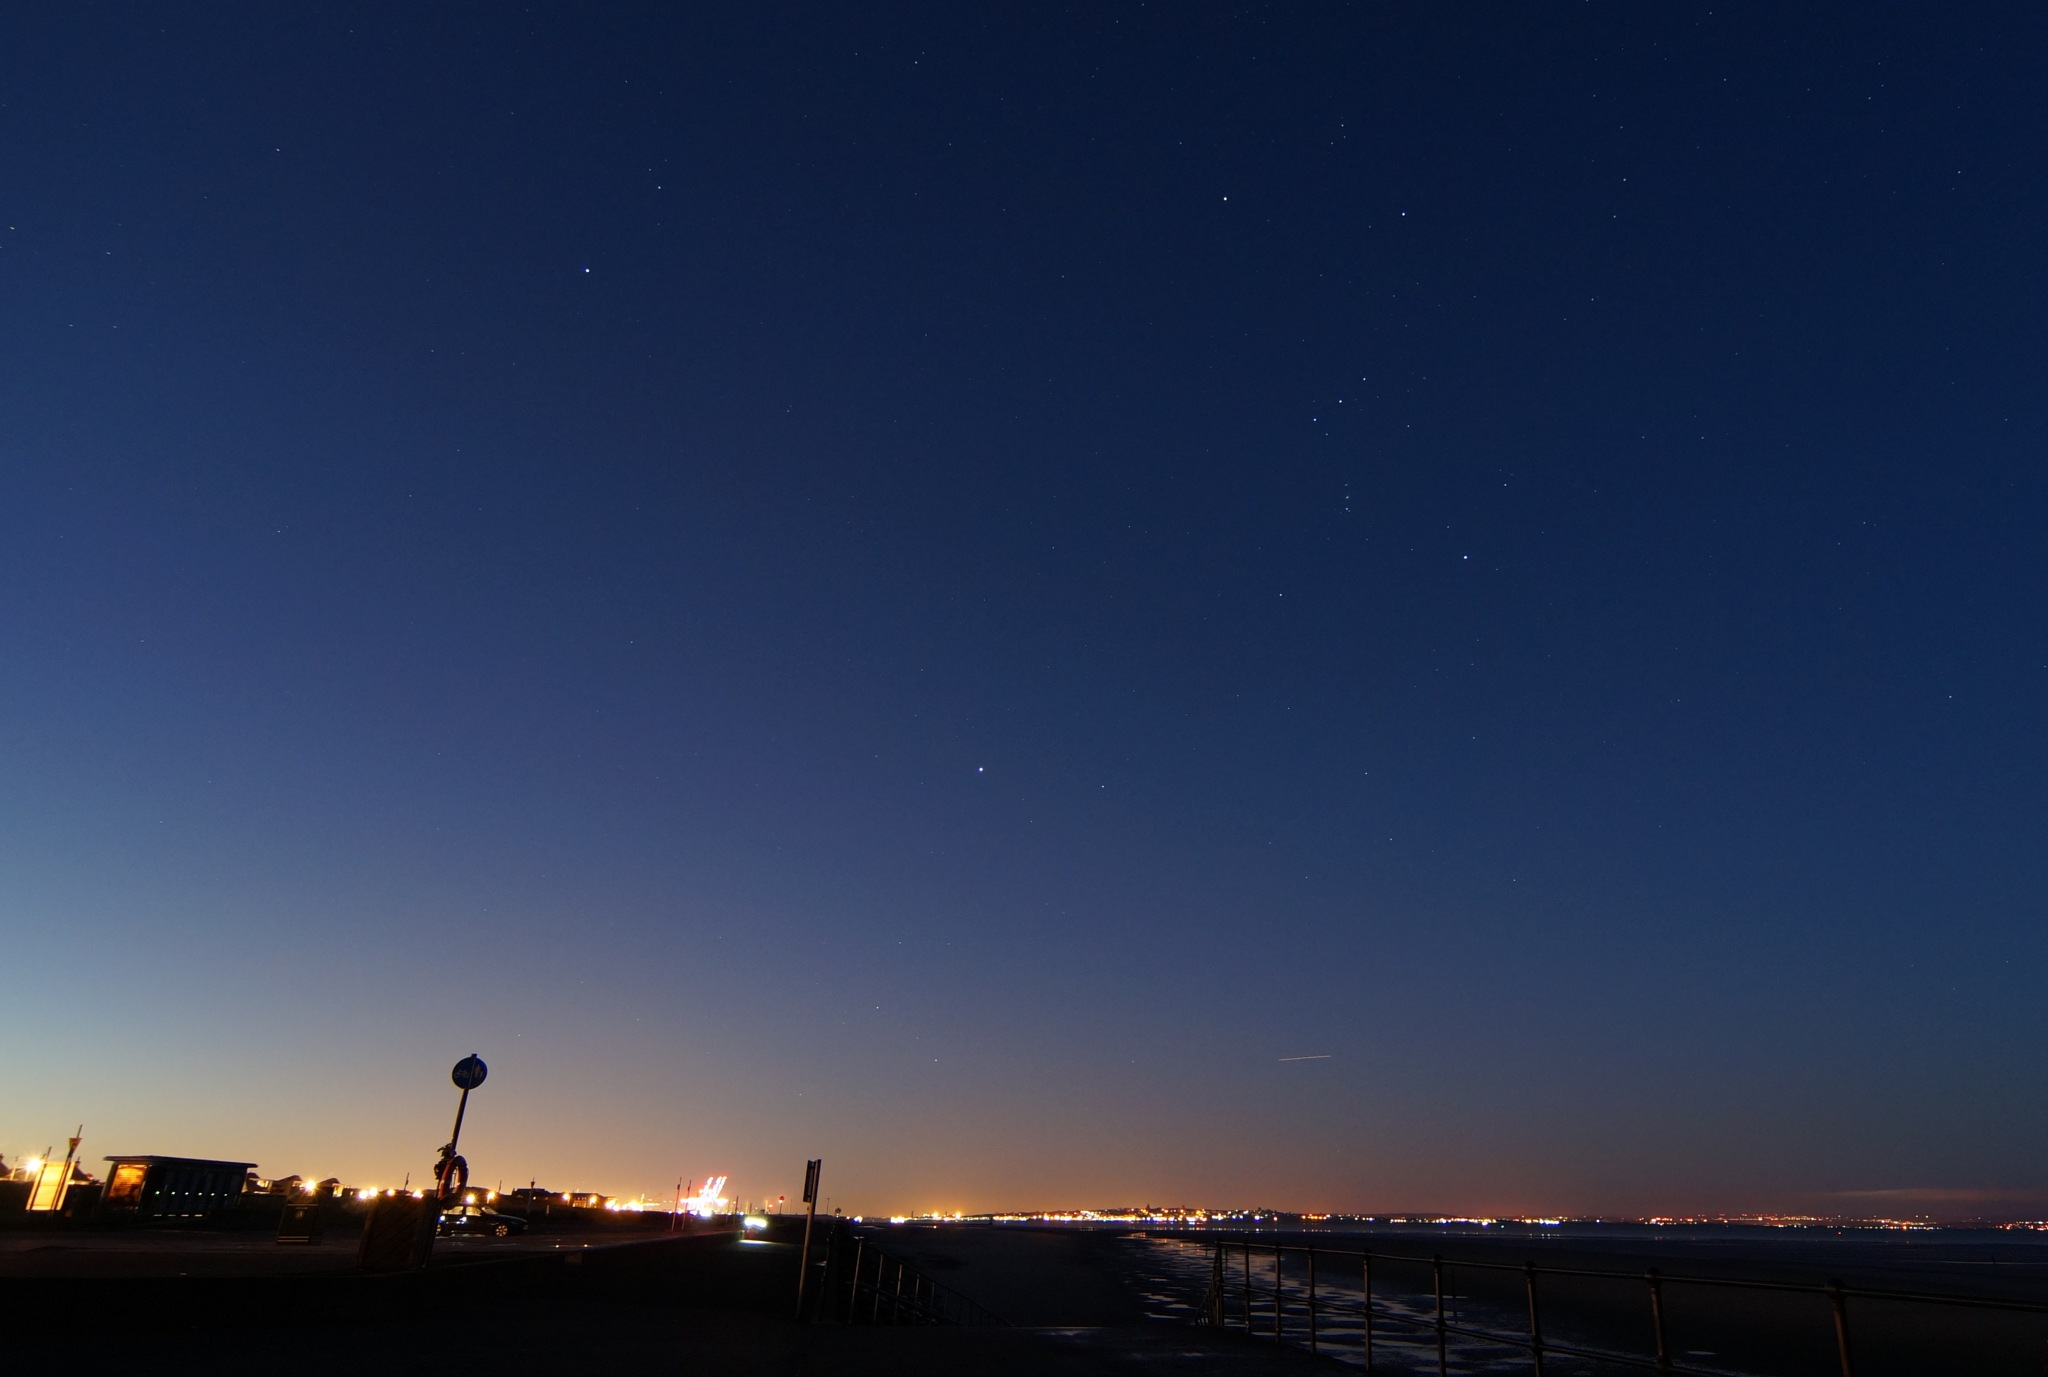 Orion over Crosby beach at daybreak by Steve Smith